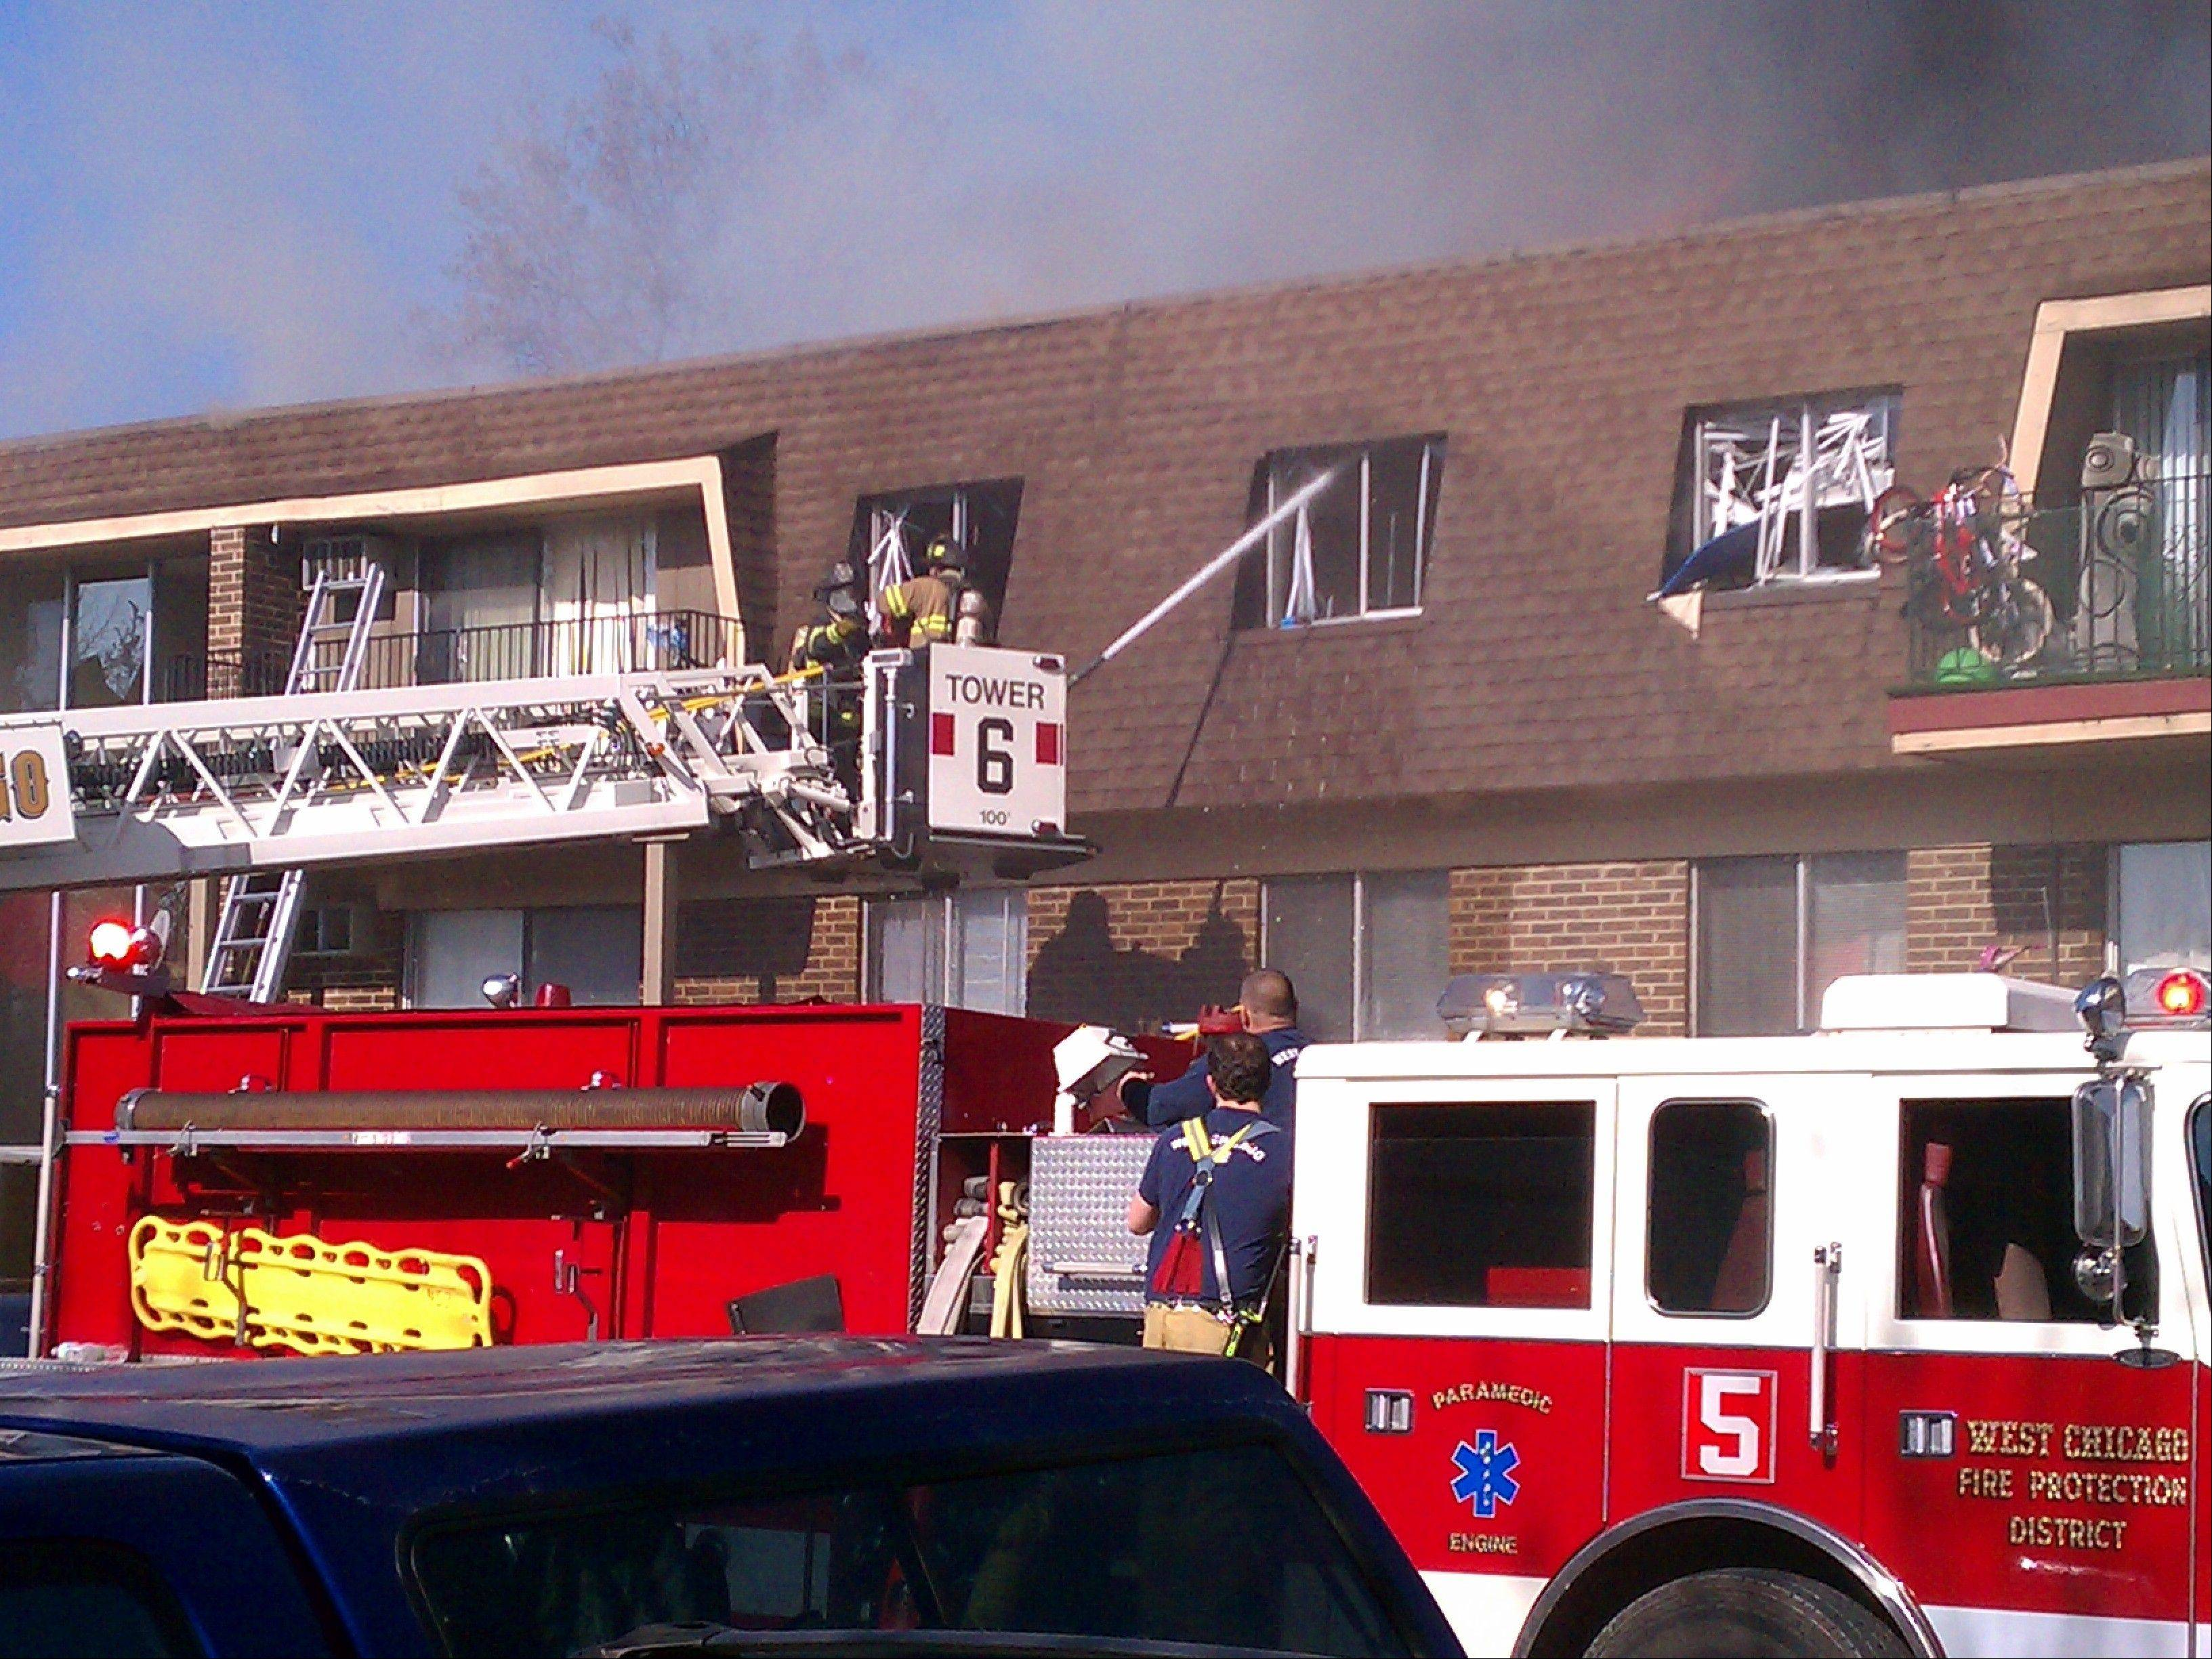 Firefighters from West Chicago and neighboring departments were on the scene of an extra-alarm blaze that swept through a three-story apartment building Sunday morning. The fire left many residents temporarily homeless, but all escaped unharmed.